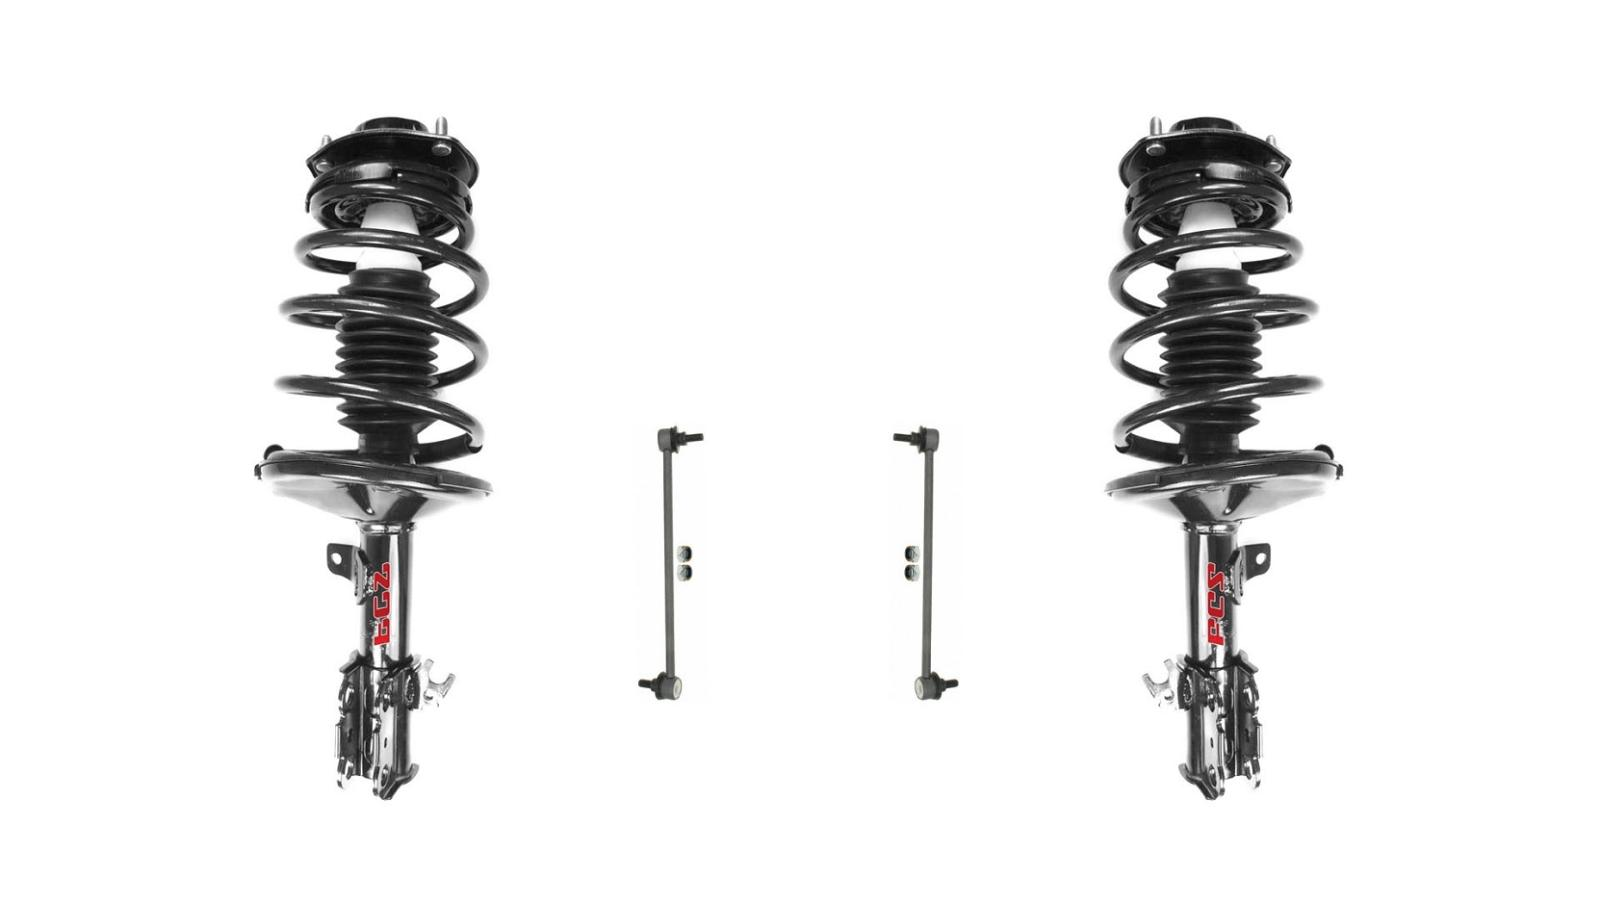 97-01 Camry 2.2 99-03 Solara (2) L & R Front Quick Spring